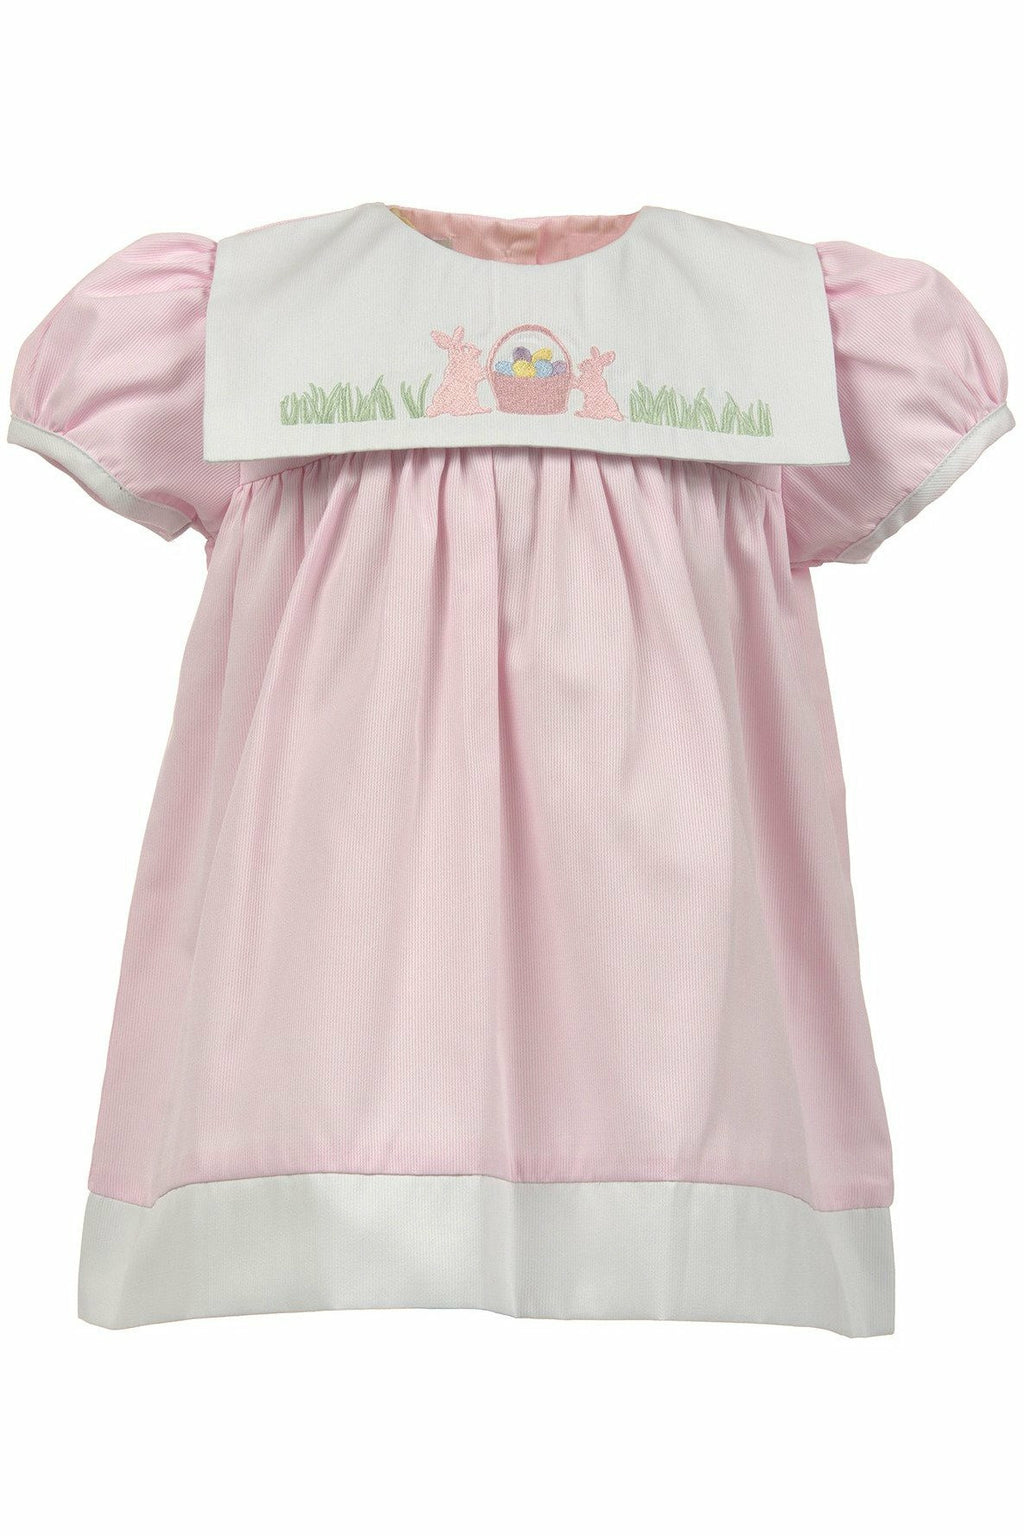 Carriage Boutique Girls Easter Dress - Pink with Easter Bunnies